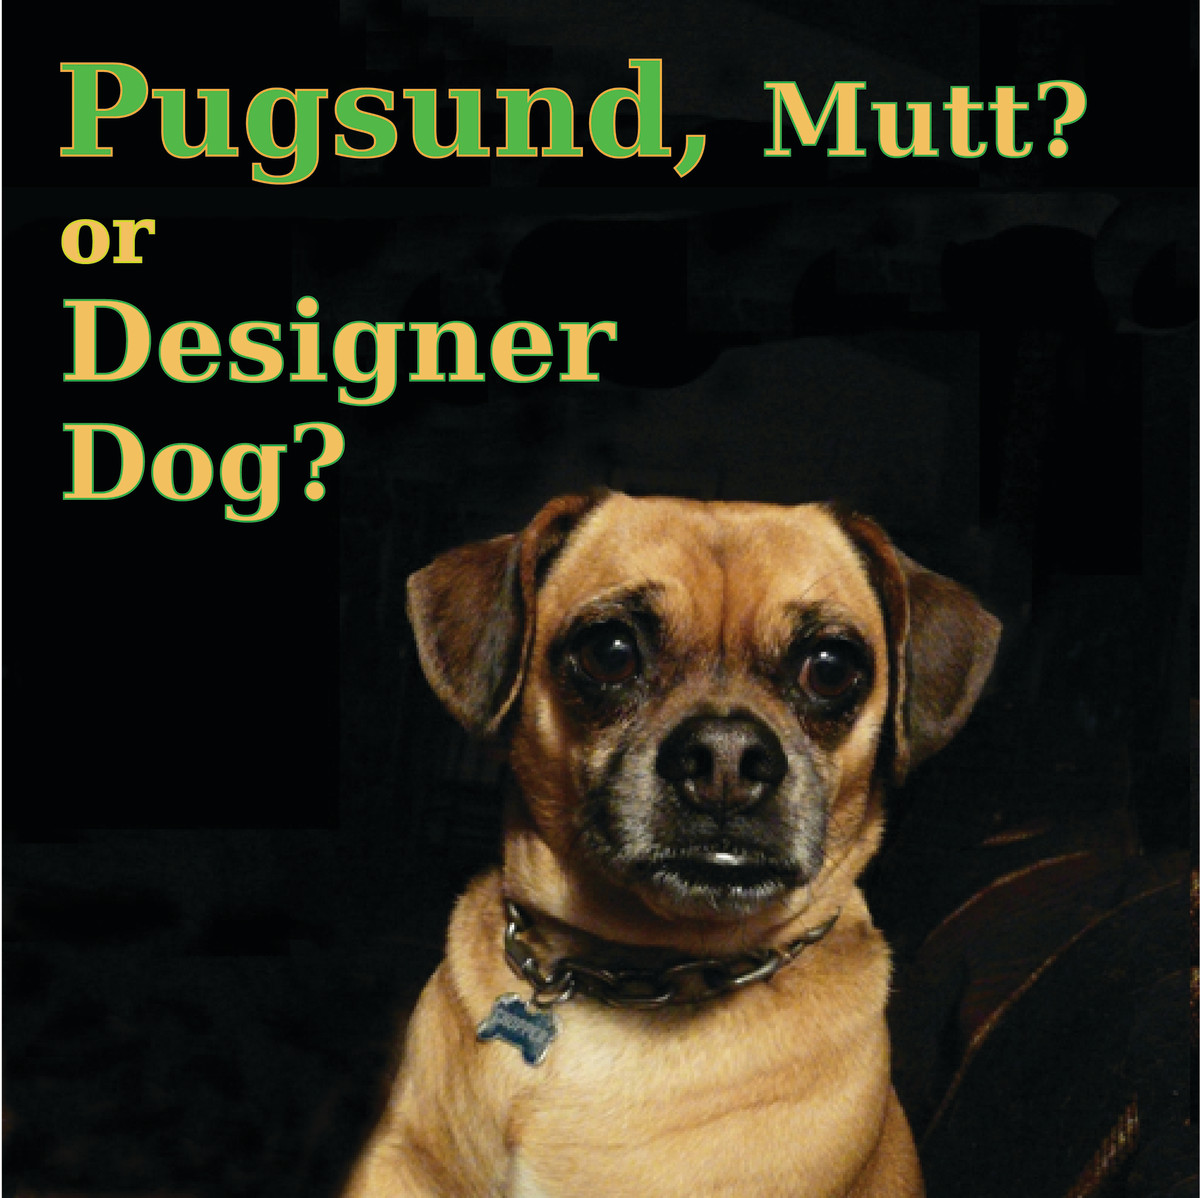 Mutt or Designer Dog? Helpful Information About Dachshund-Pug Mixed Breed